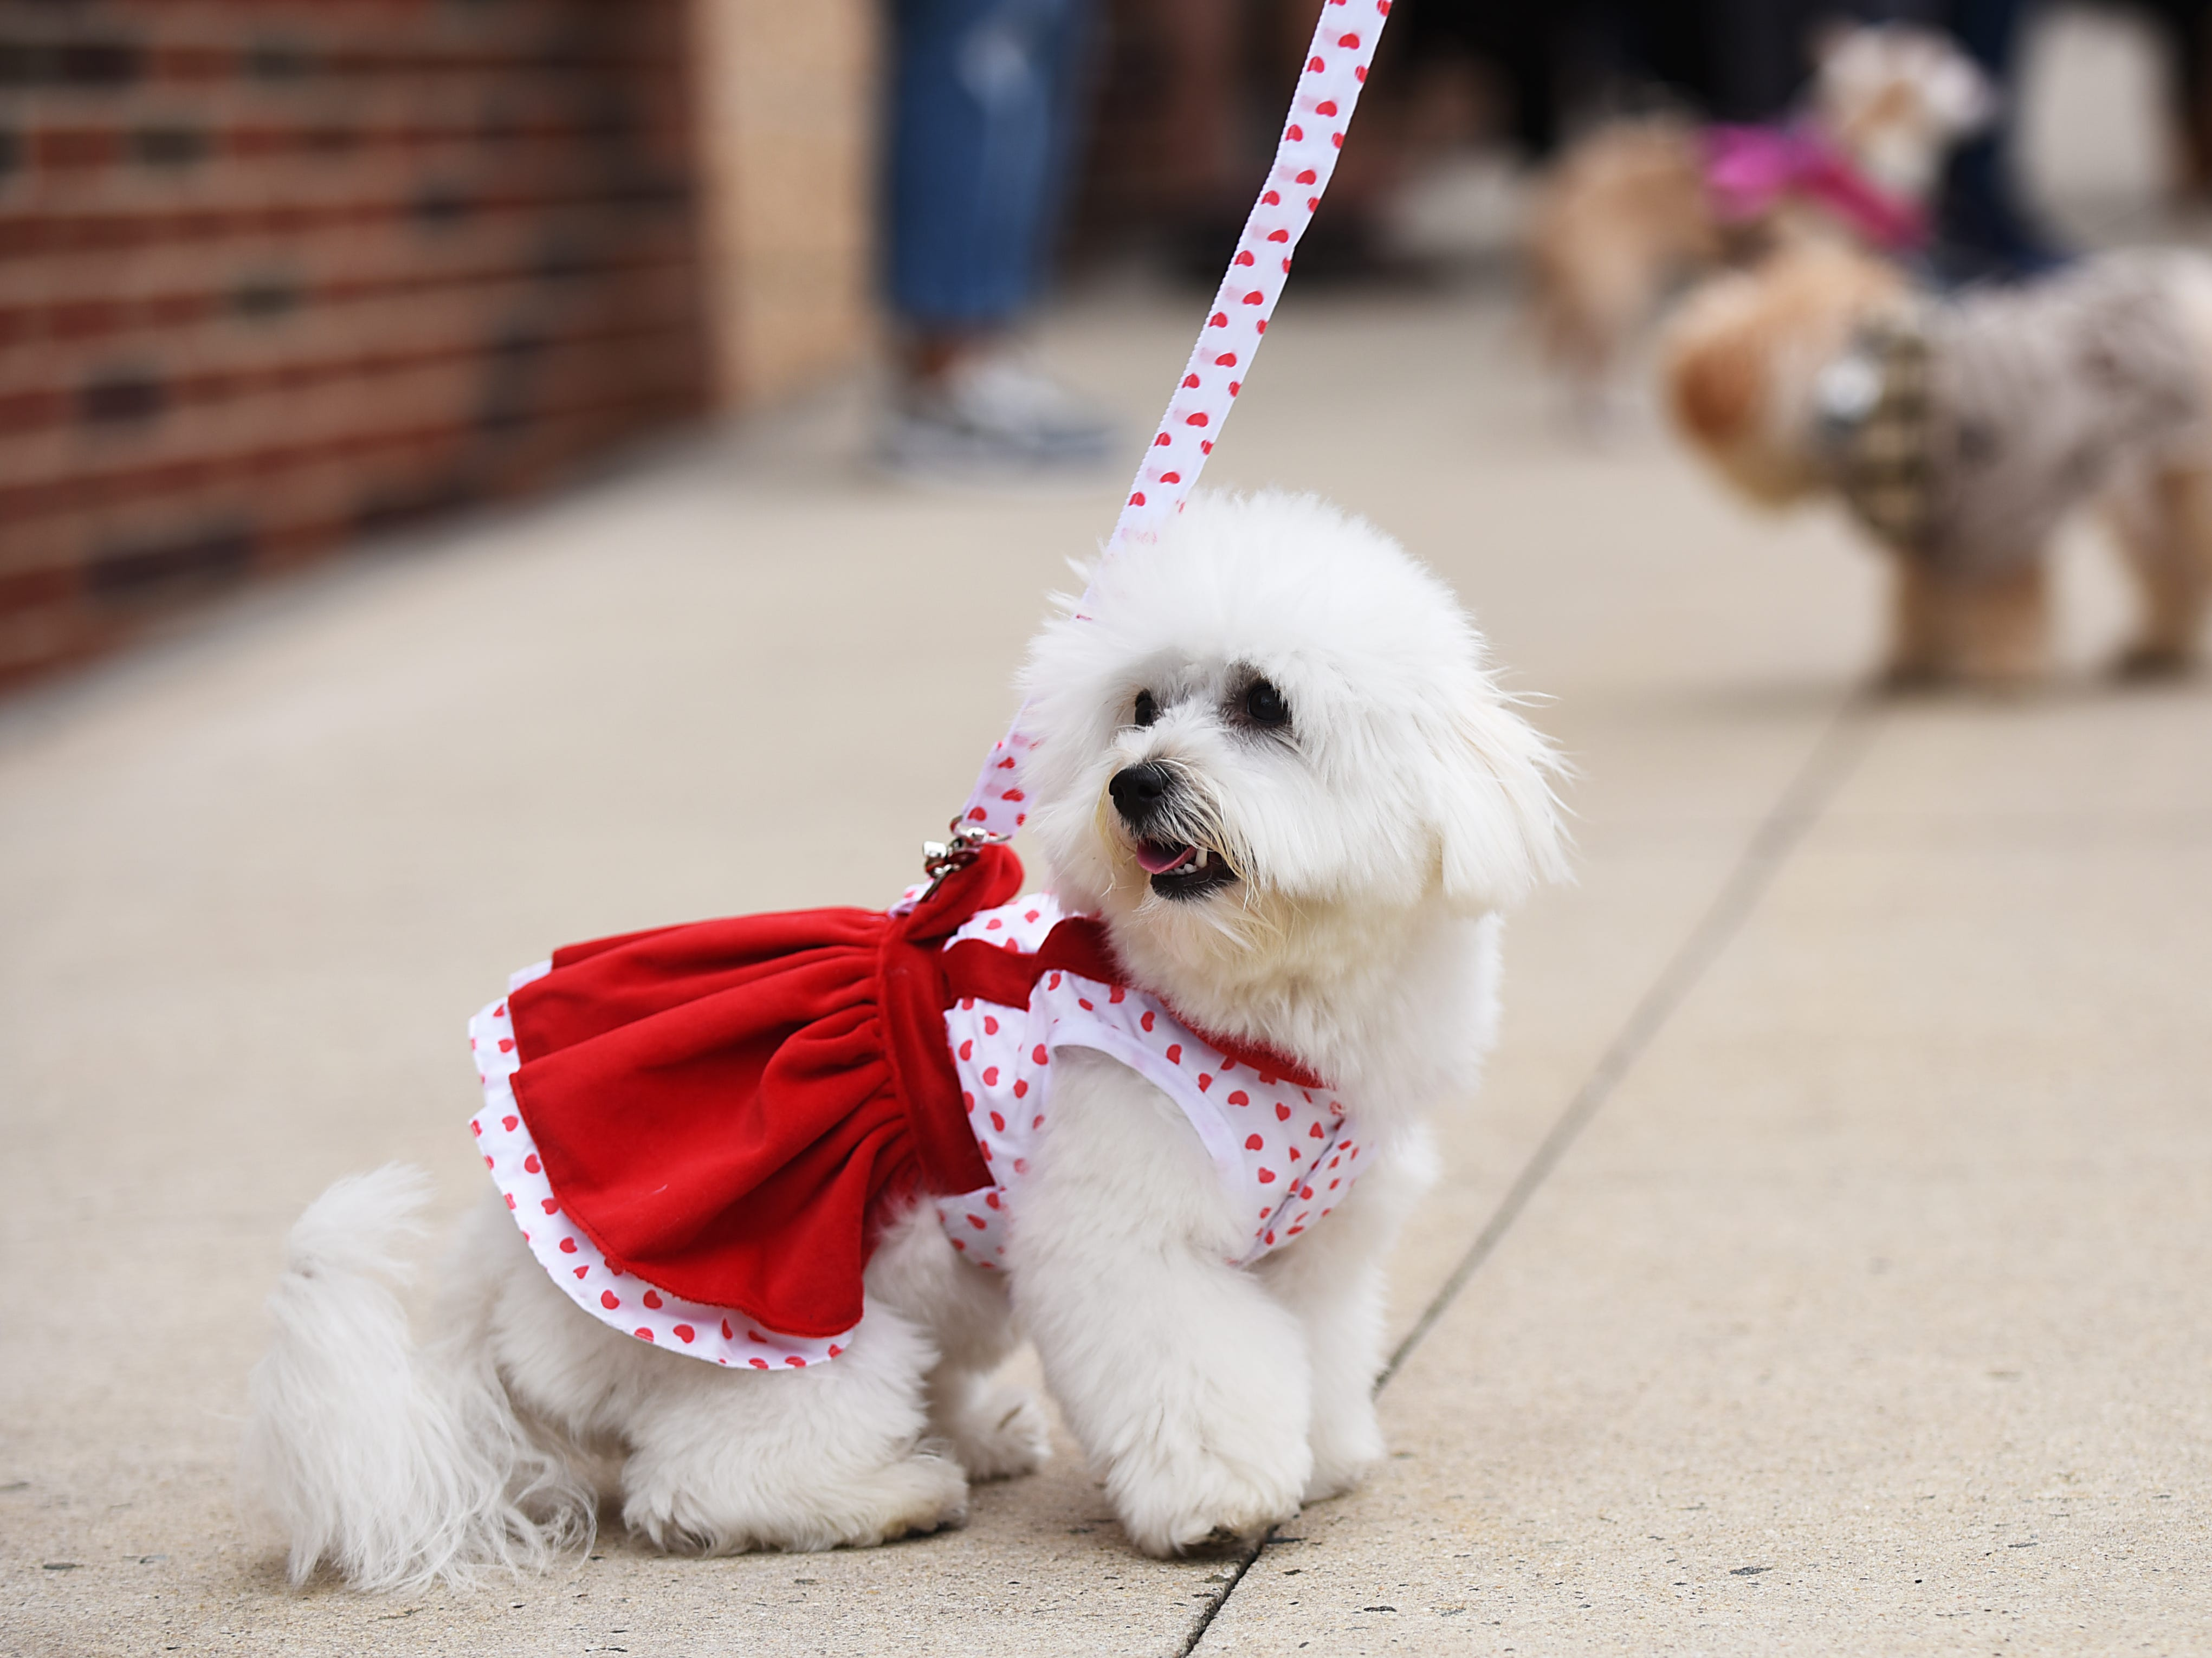 Milky, a one year old Coton de Tulear from Edgewater, wears a red dress at Woofstock 2018, a benefit for Bergen County animal rescue organizations, at City Place in Edgewater on Saturday September 8, 2018.